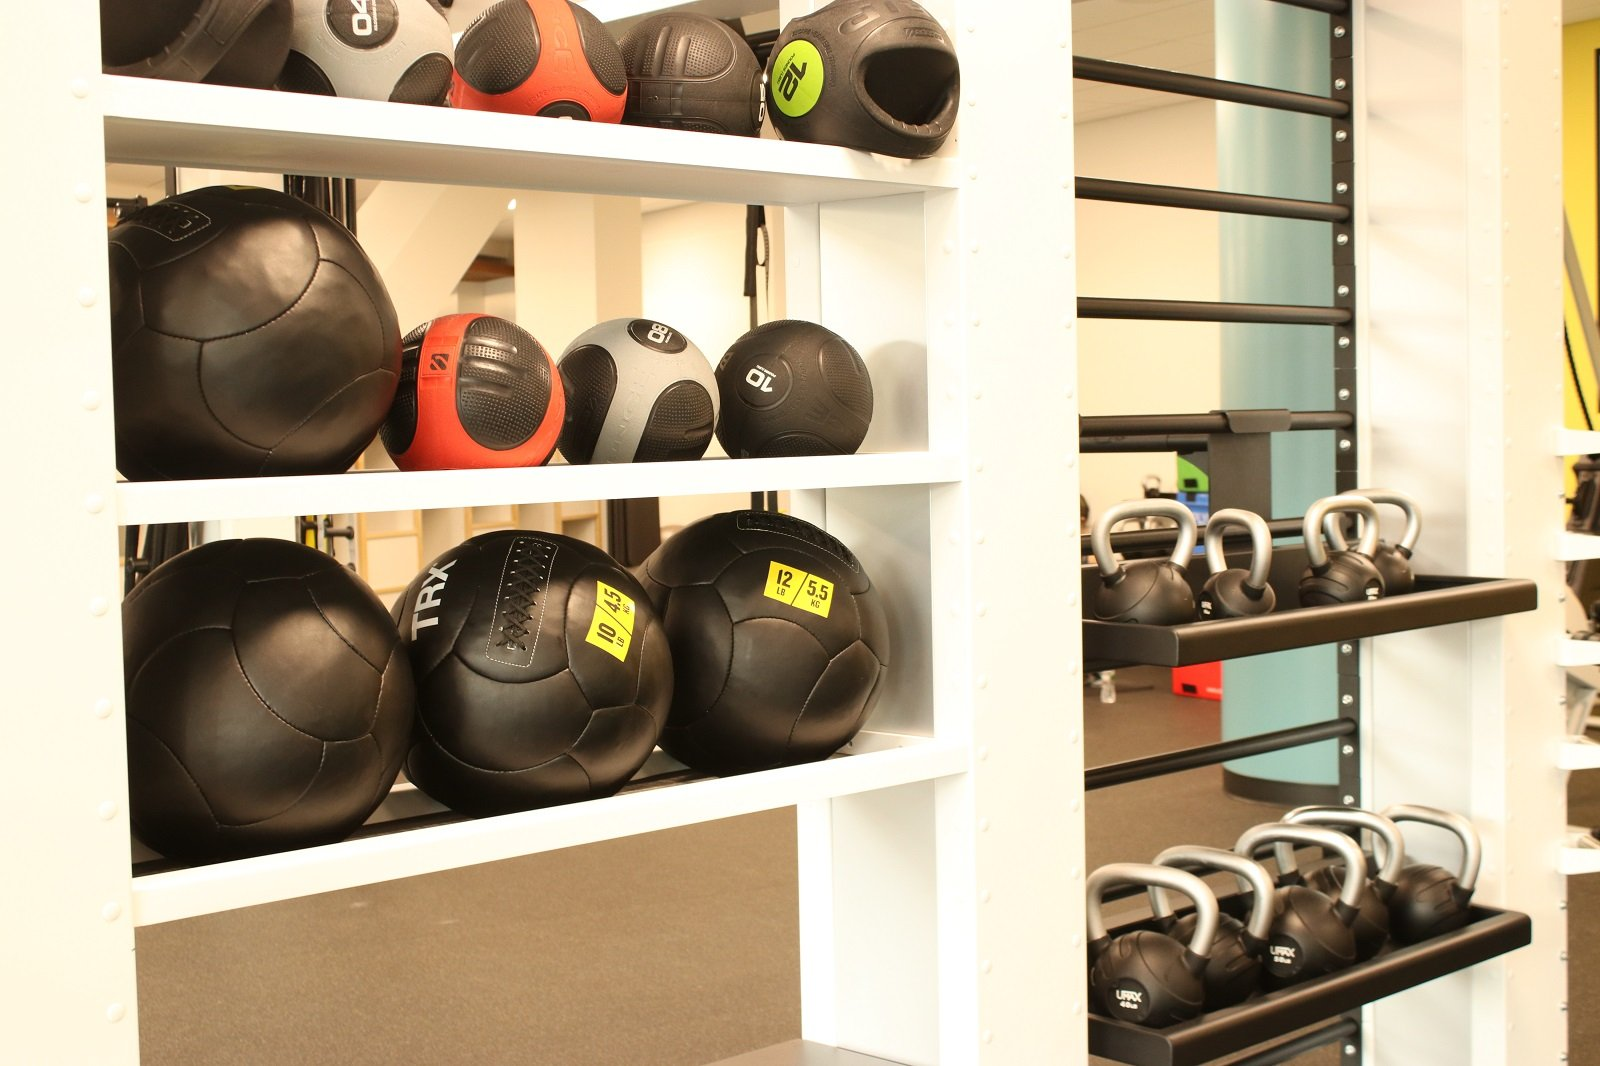 medicine balls and kettlebells on a shelf in the fitness center